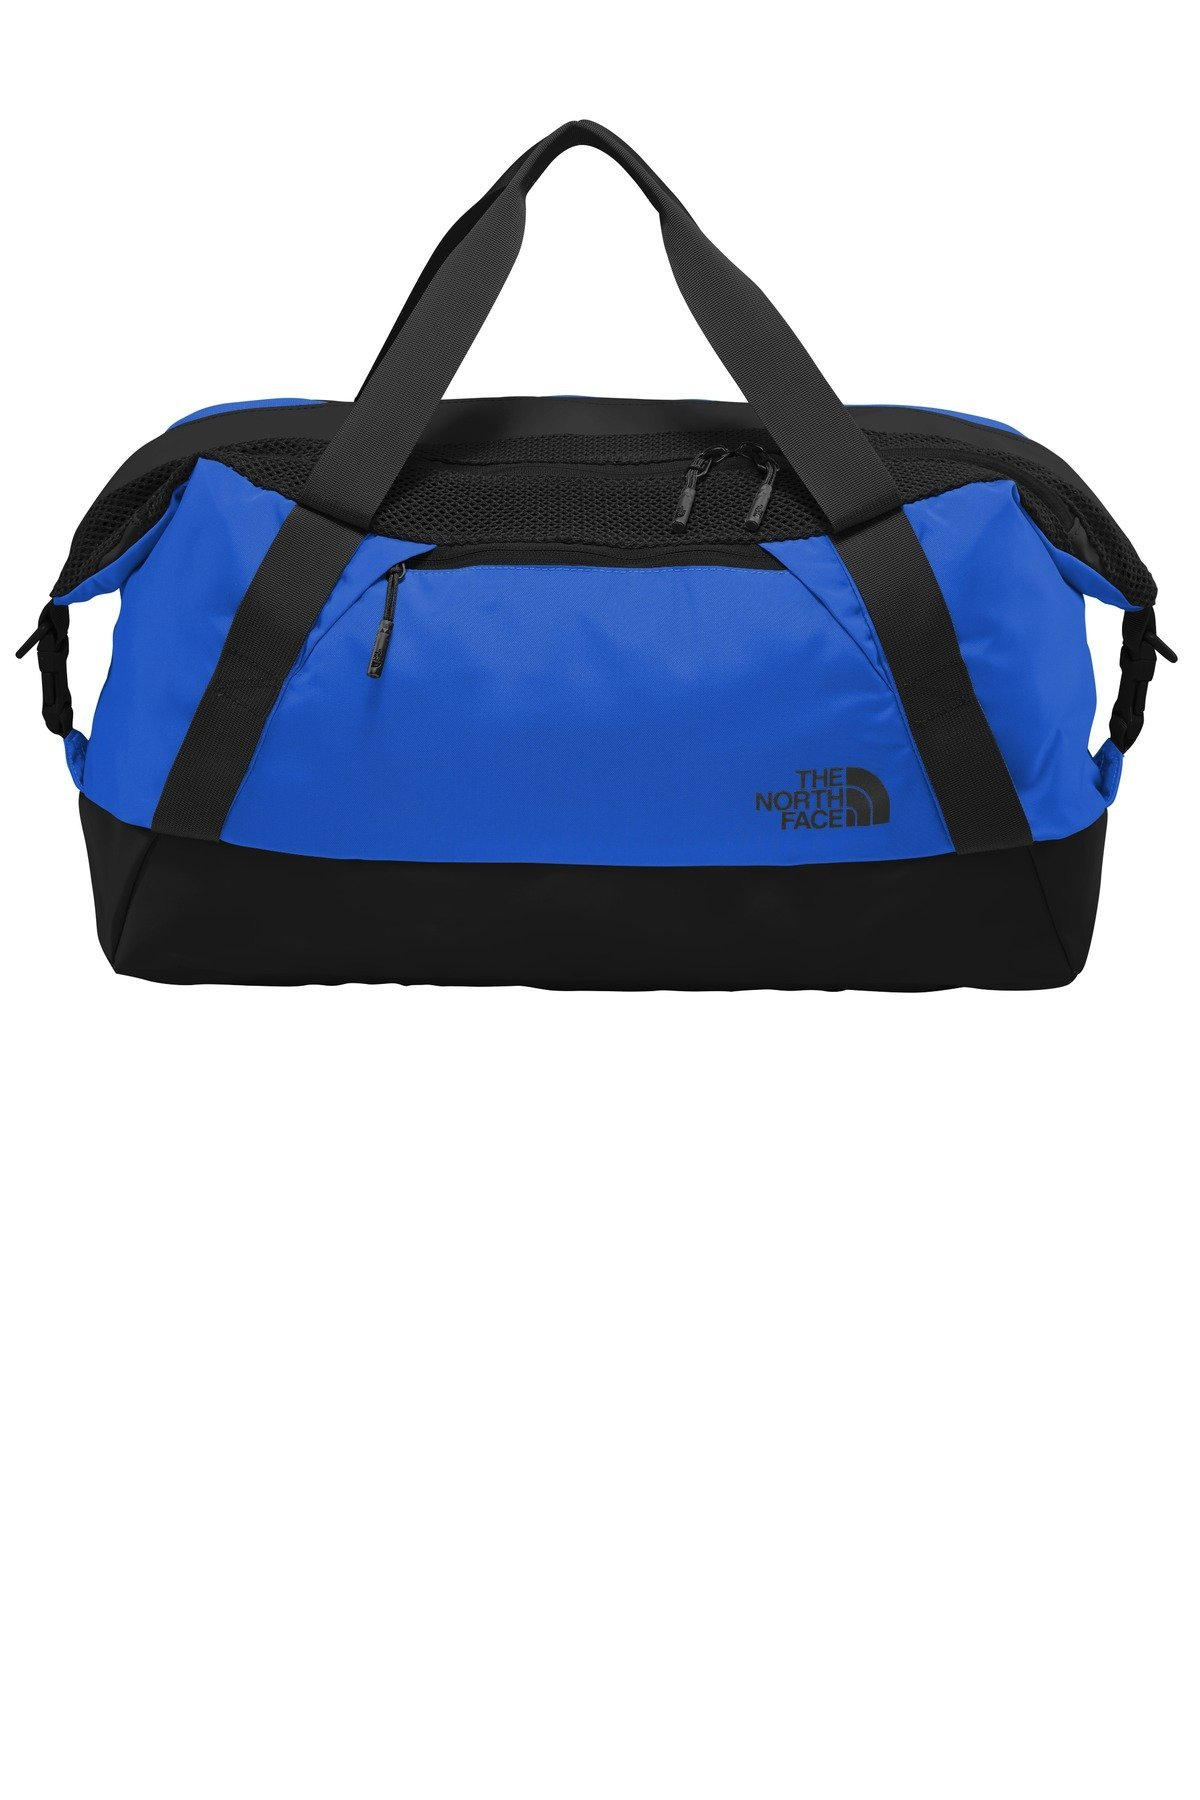 682ee396ea The North Face Apex Duffel NF0A3KXX Monster Blue/ Asphalt Grey ...